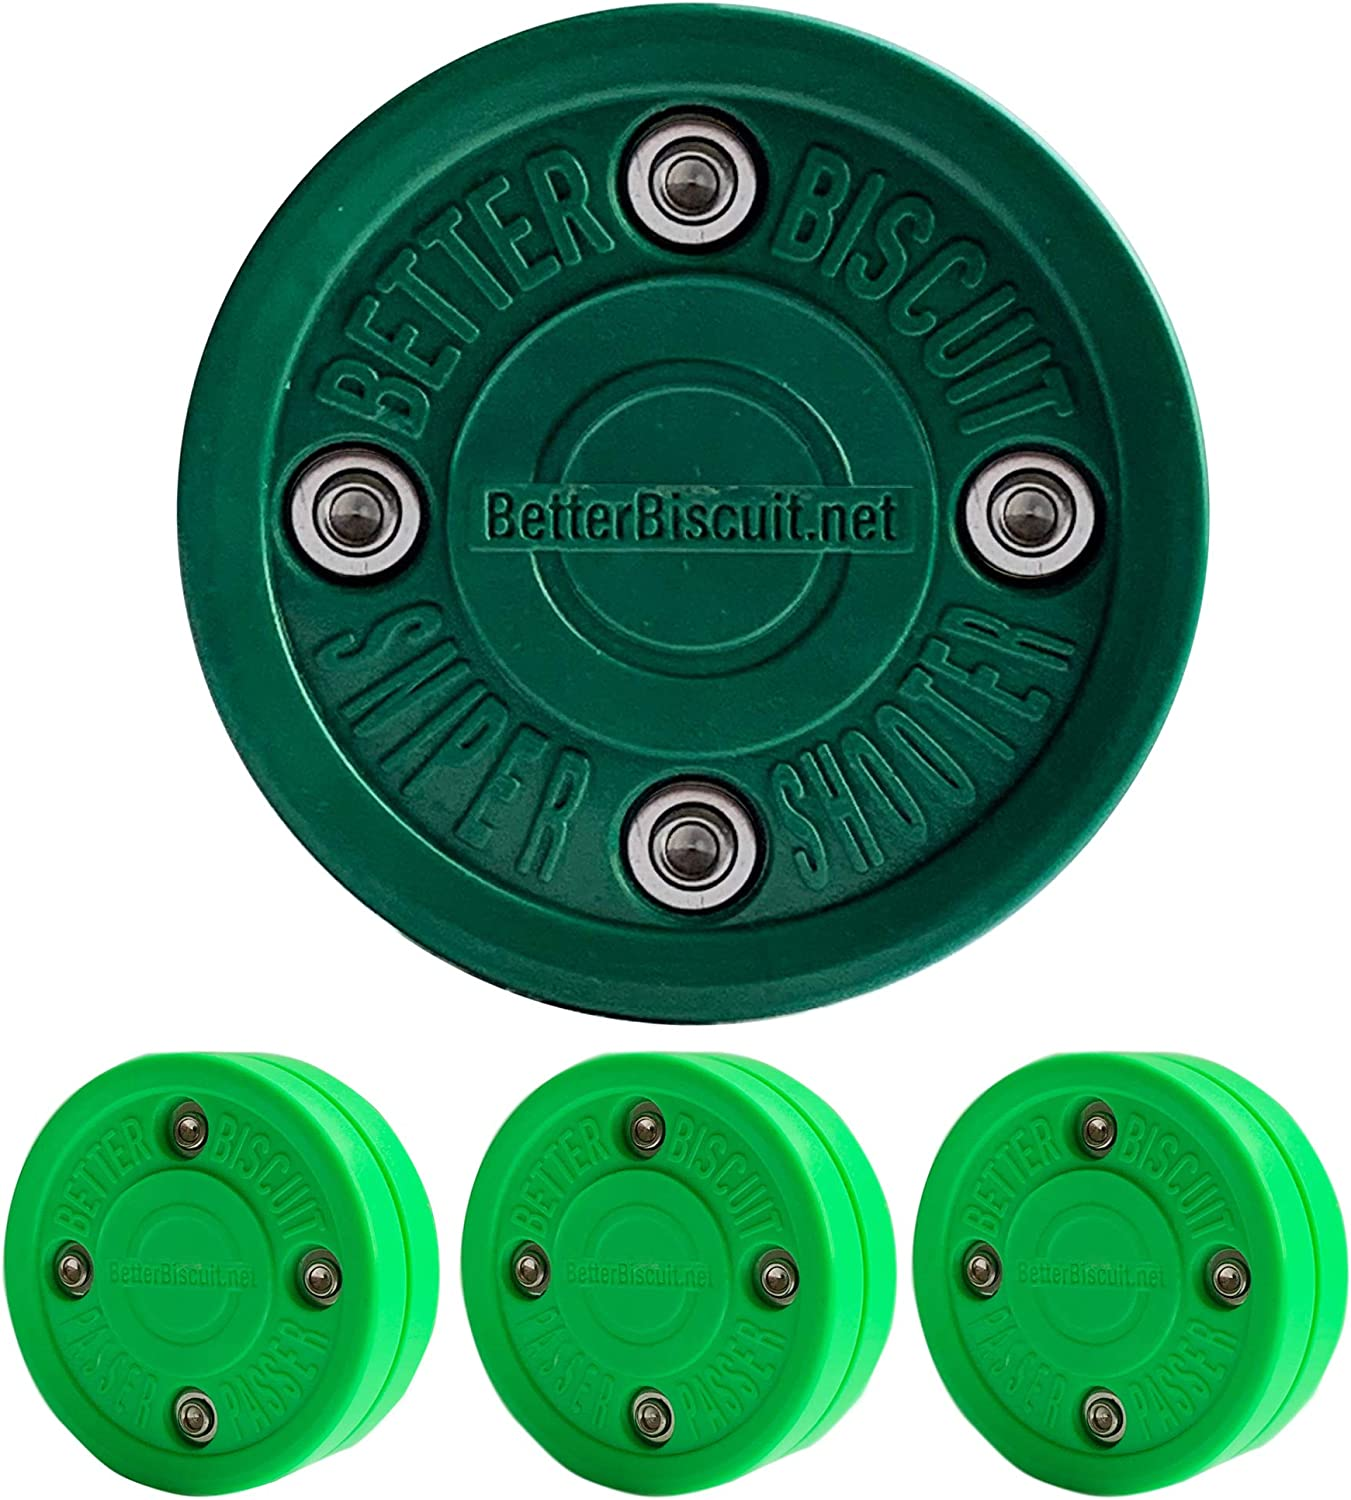 Green//Dark Green 3 Passer and 1 Shooter Better Biscuit 4 Pack